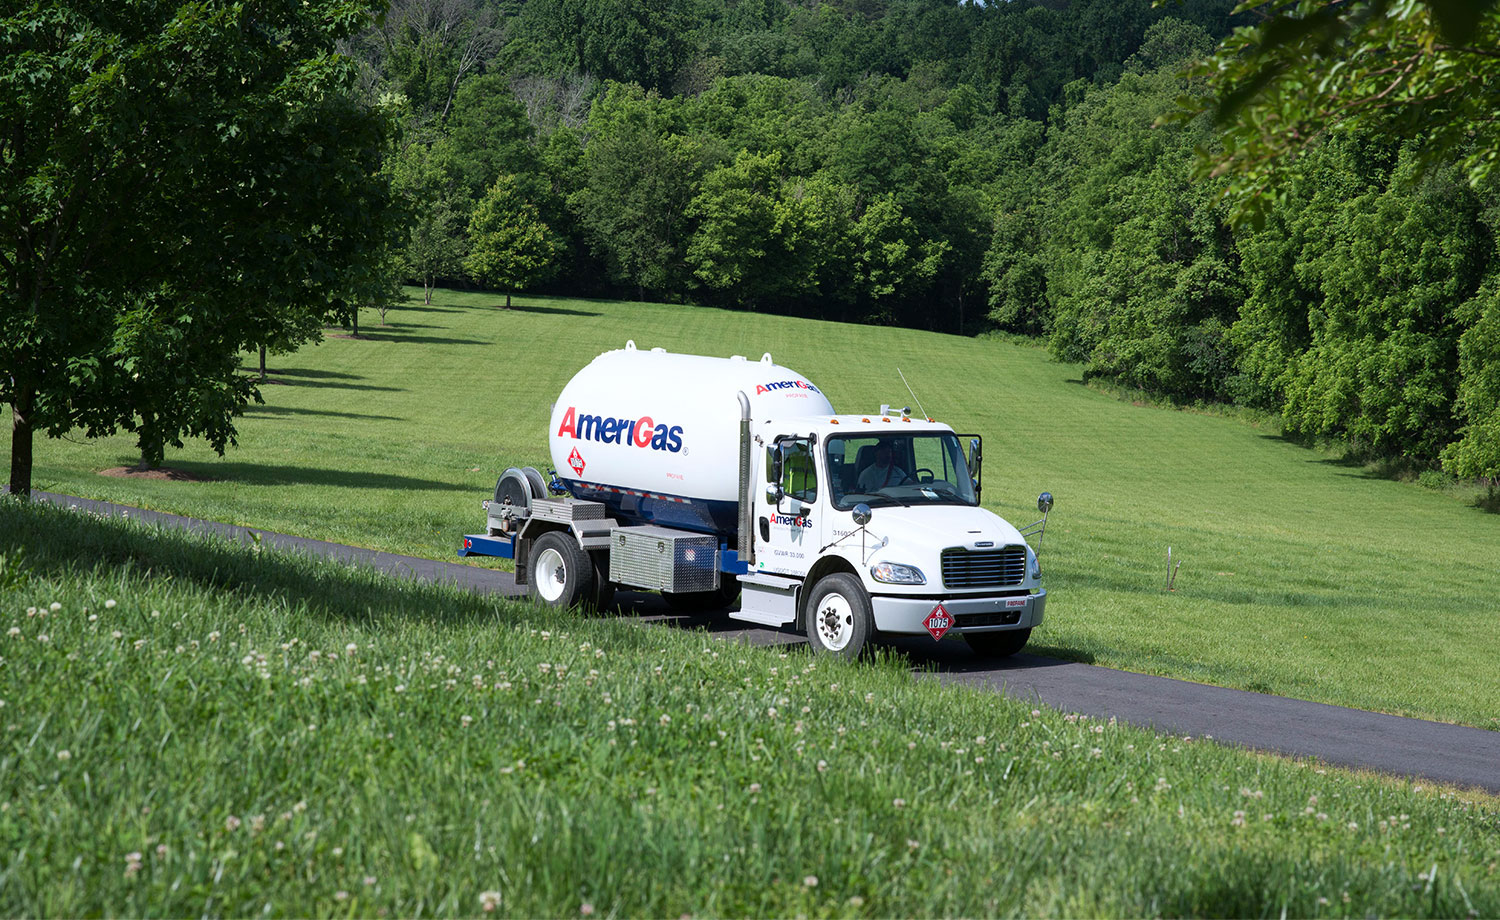 AmeriGas tanker truck on a lush rural road.